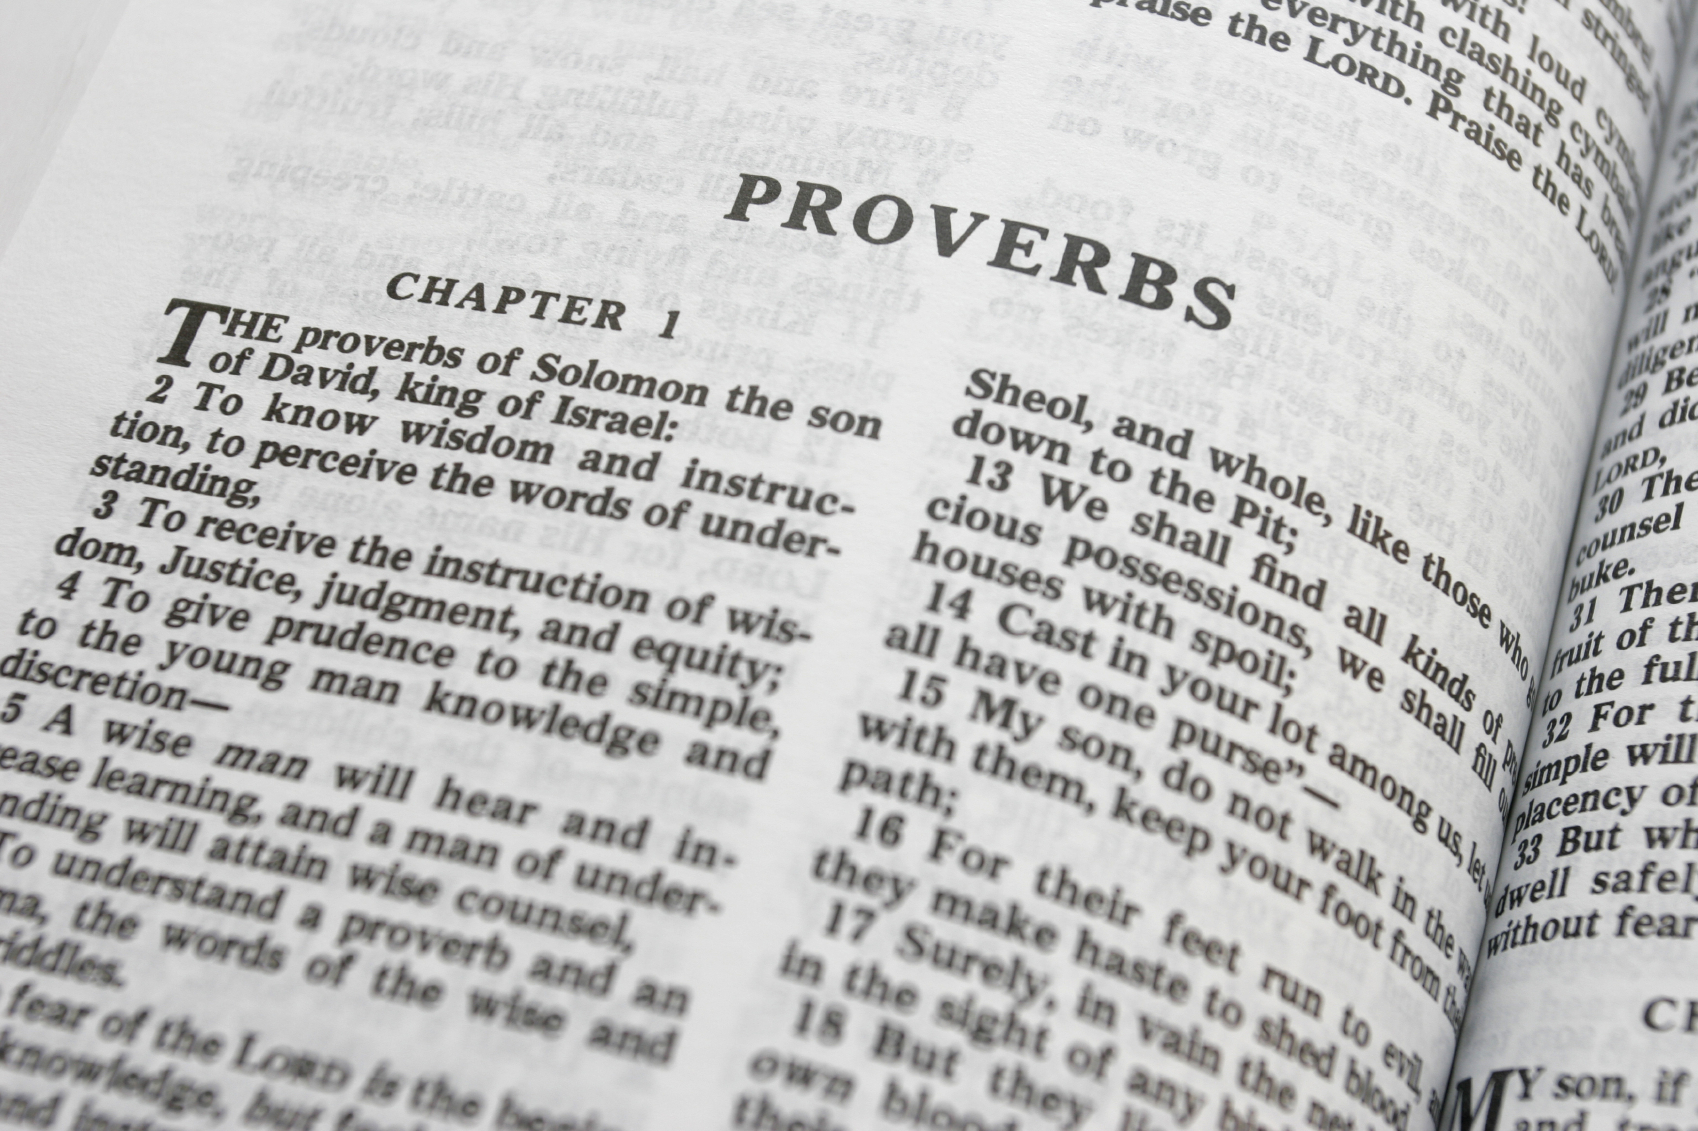 What The Book Of Proverbs Has To Say About The Current Age